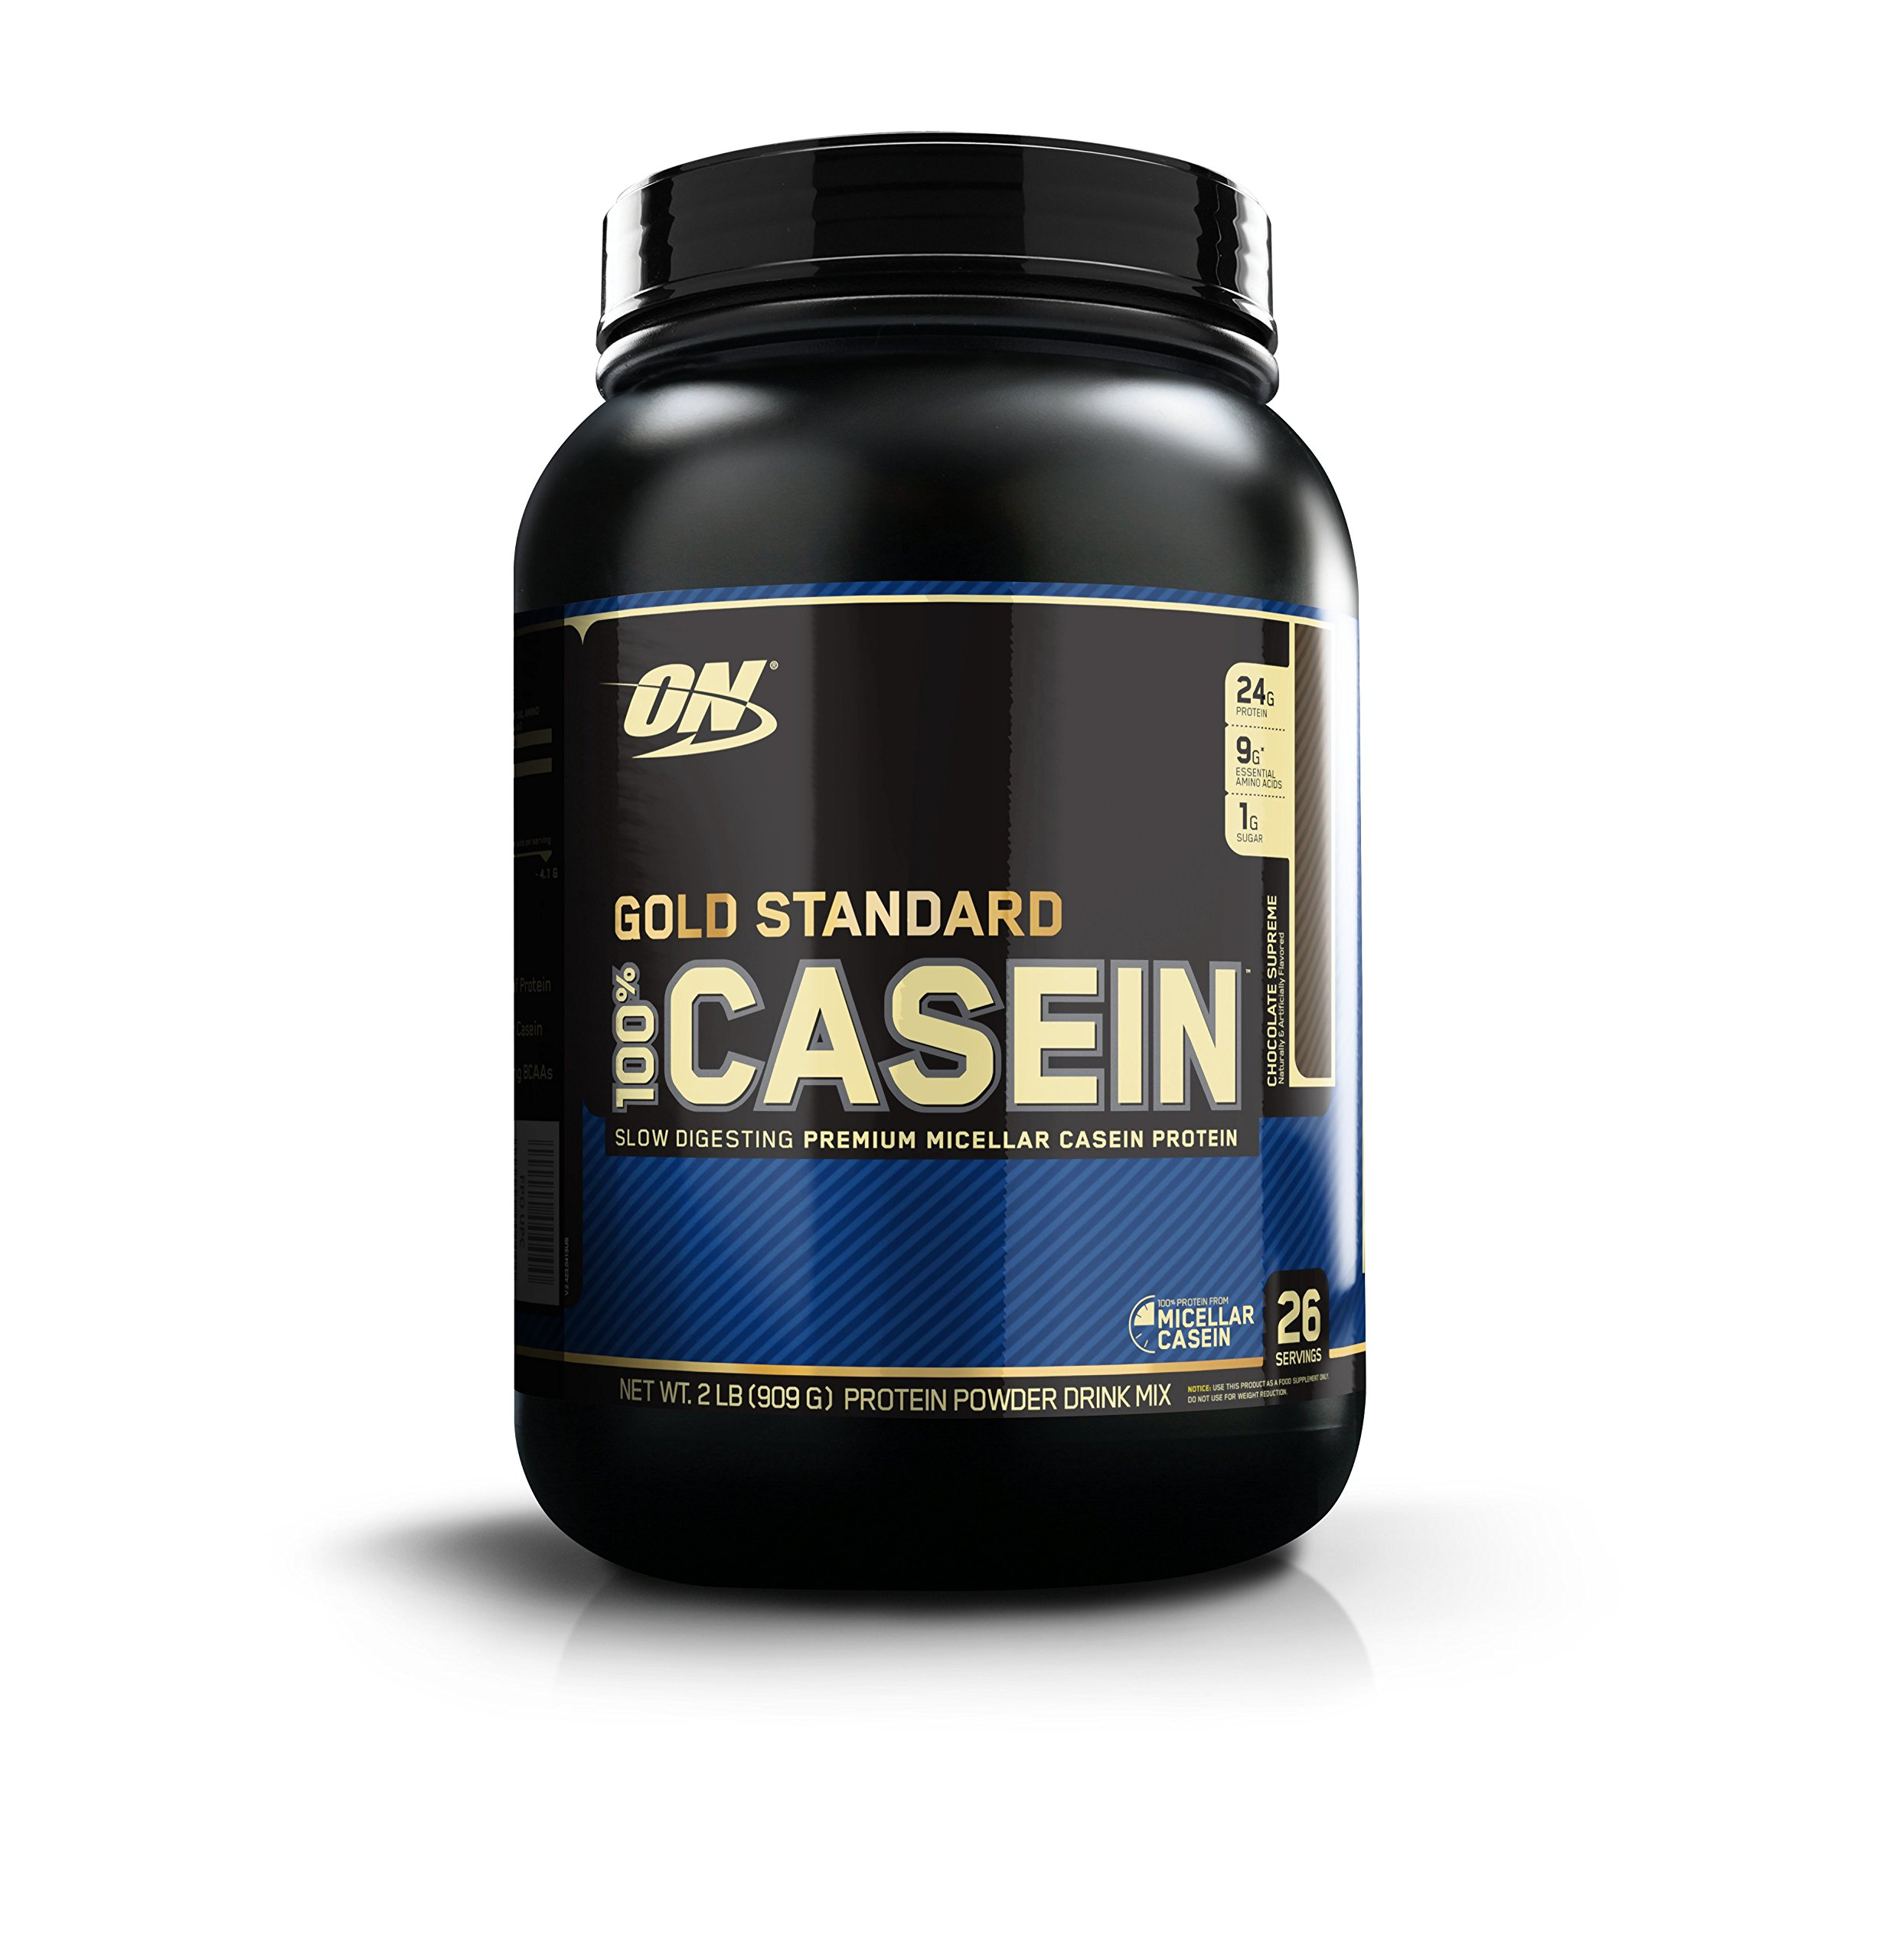 OPTIMUM NUTRITION GOLD STANDARD 100% Micellar Casein Protein Powder, Slow Digesting, Helps Keep You Full, Overnight Muscle Recovery, Chocolate Supreme, 0.91 kg by Optimum Nutrition